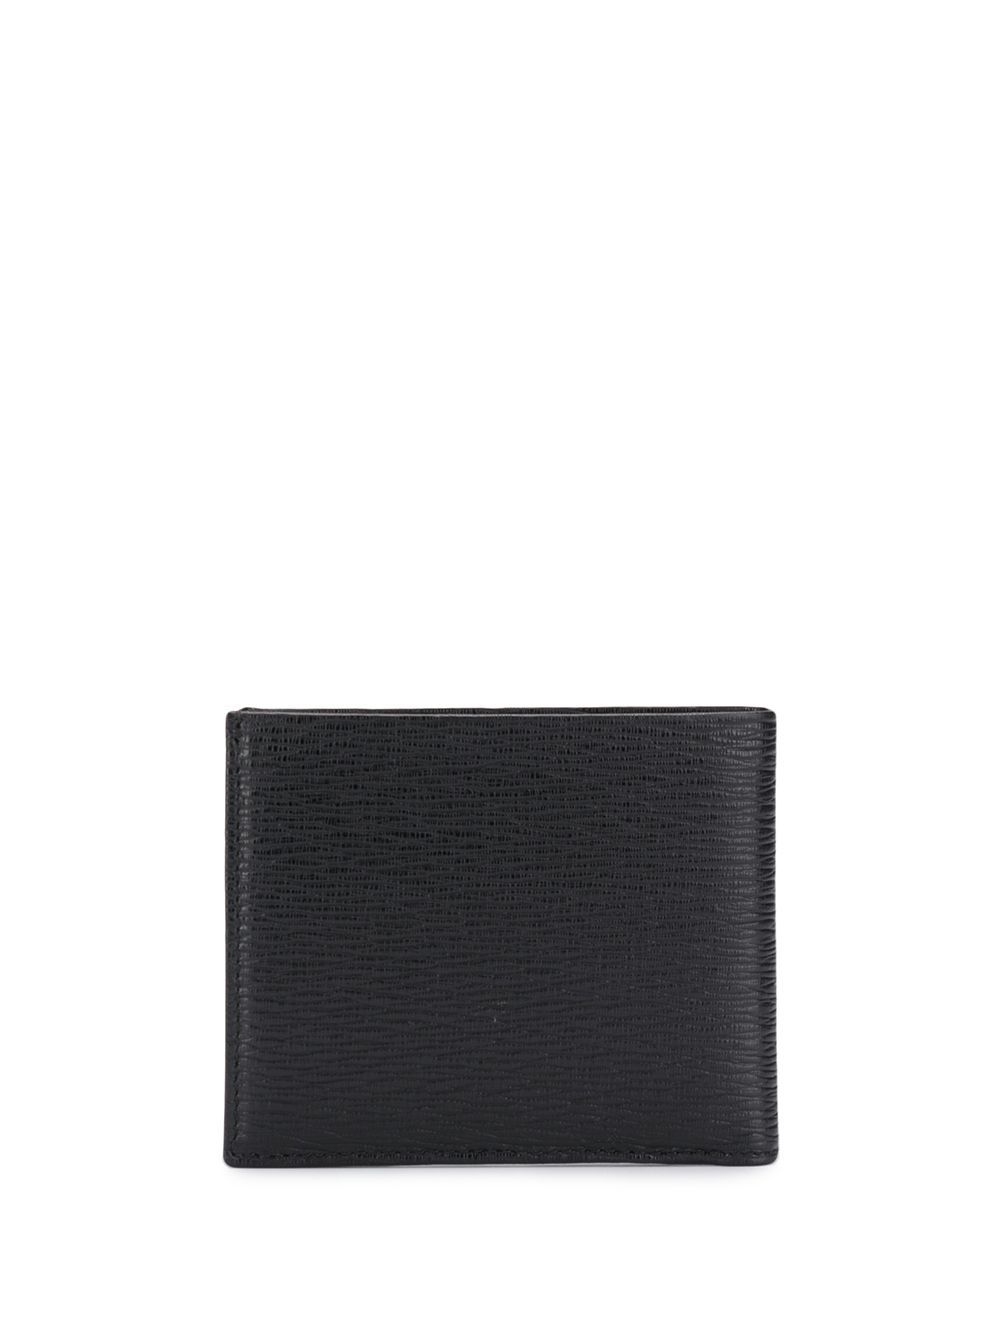 SALVATORE FERRAGAMO Gancini Logo Wallet With Coin Pocket Black